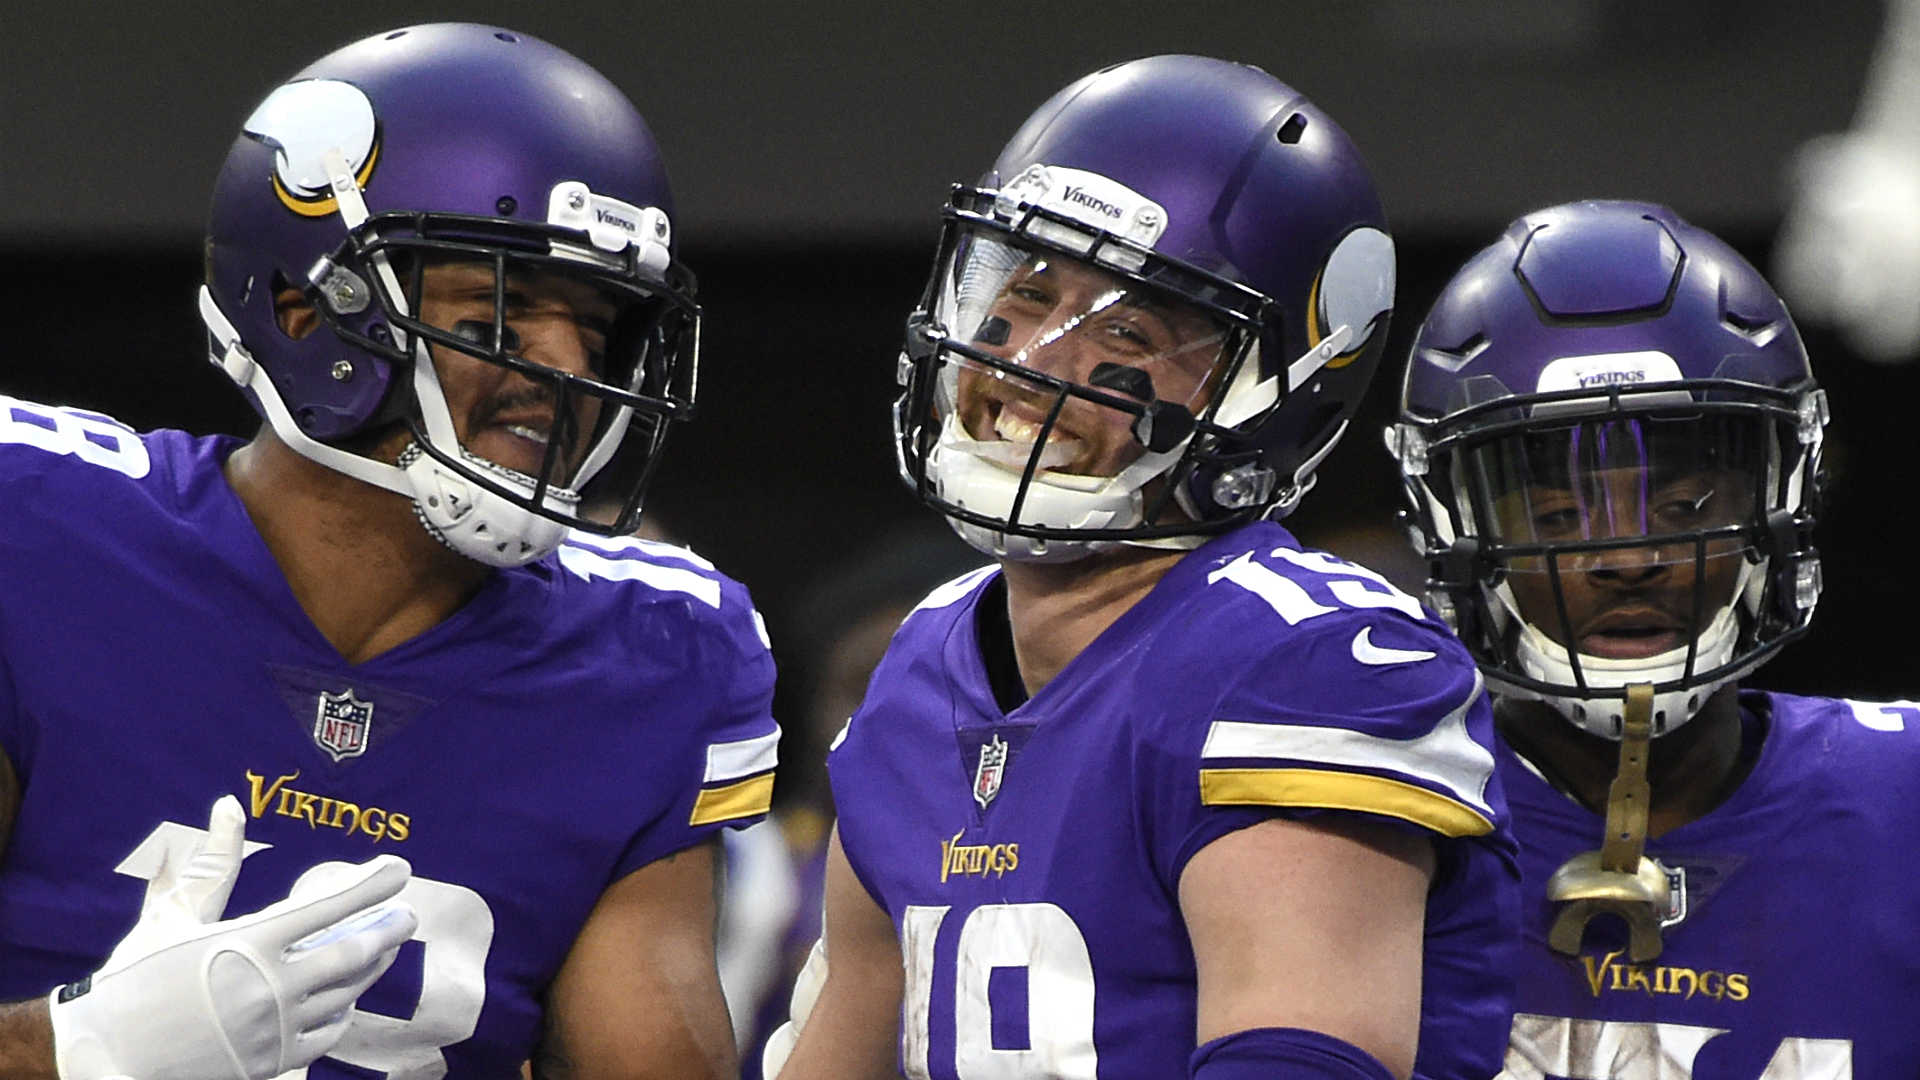 Cooper Kupp's Mistakes Cost Rams in 24-7 Loss to Vikings